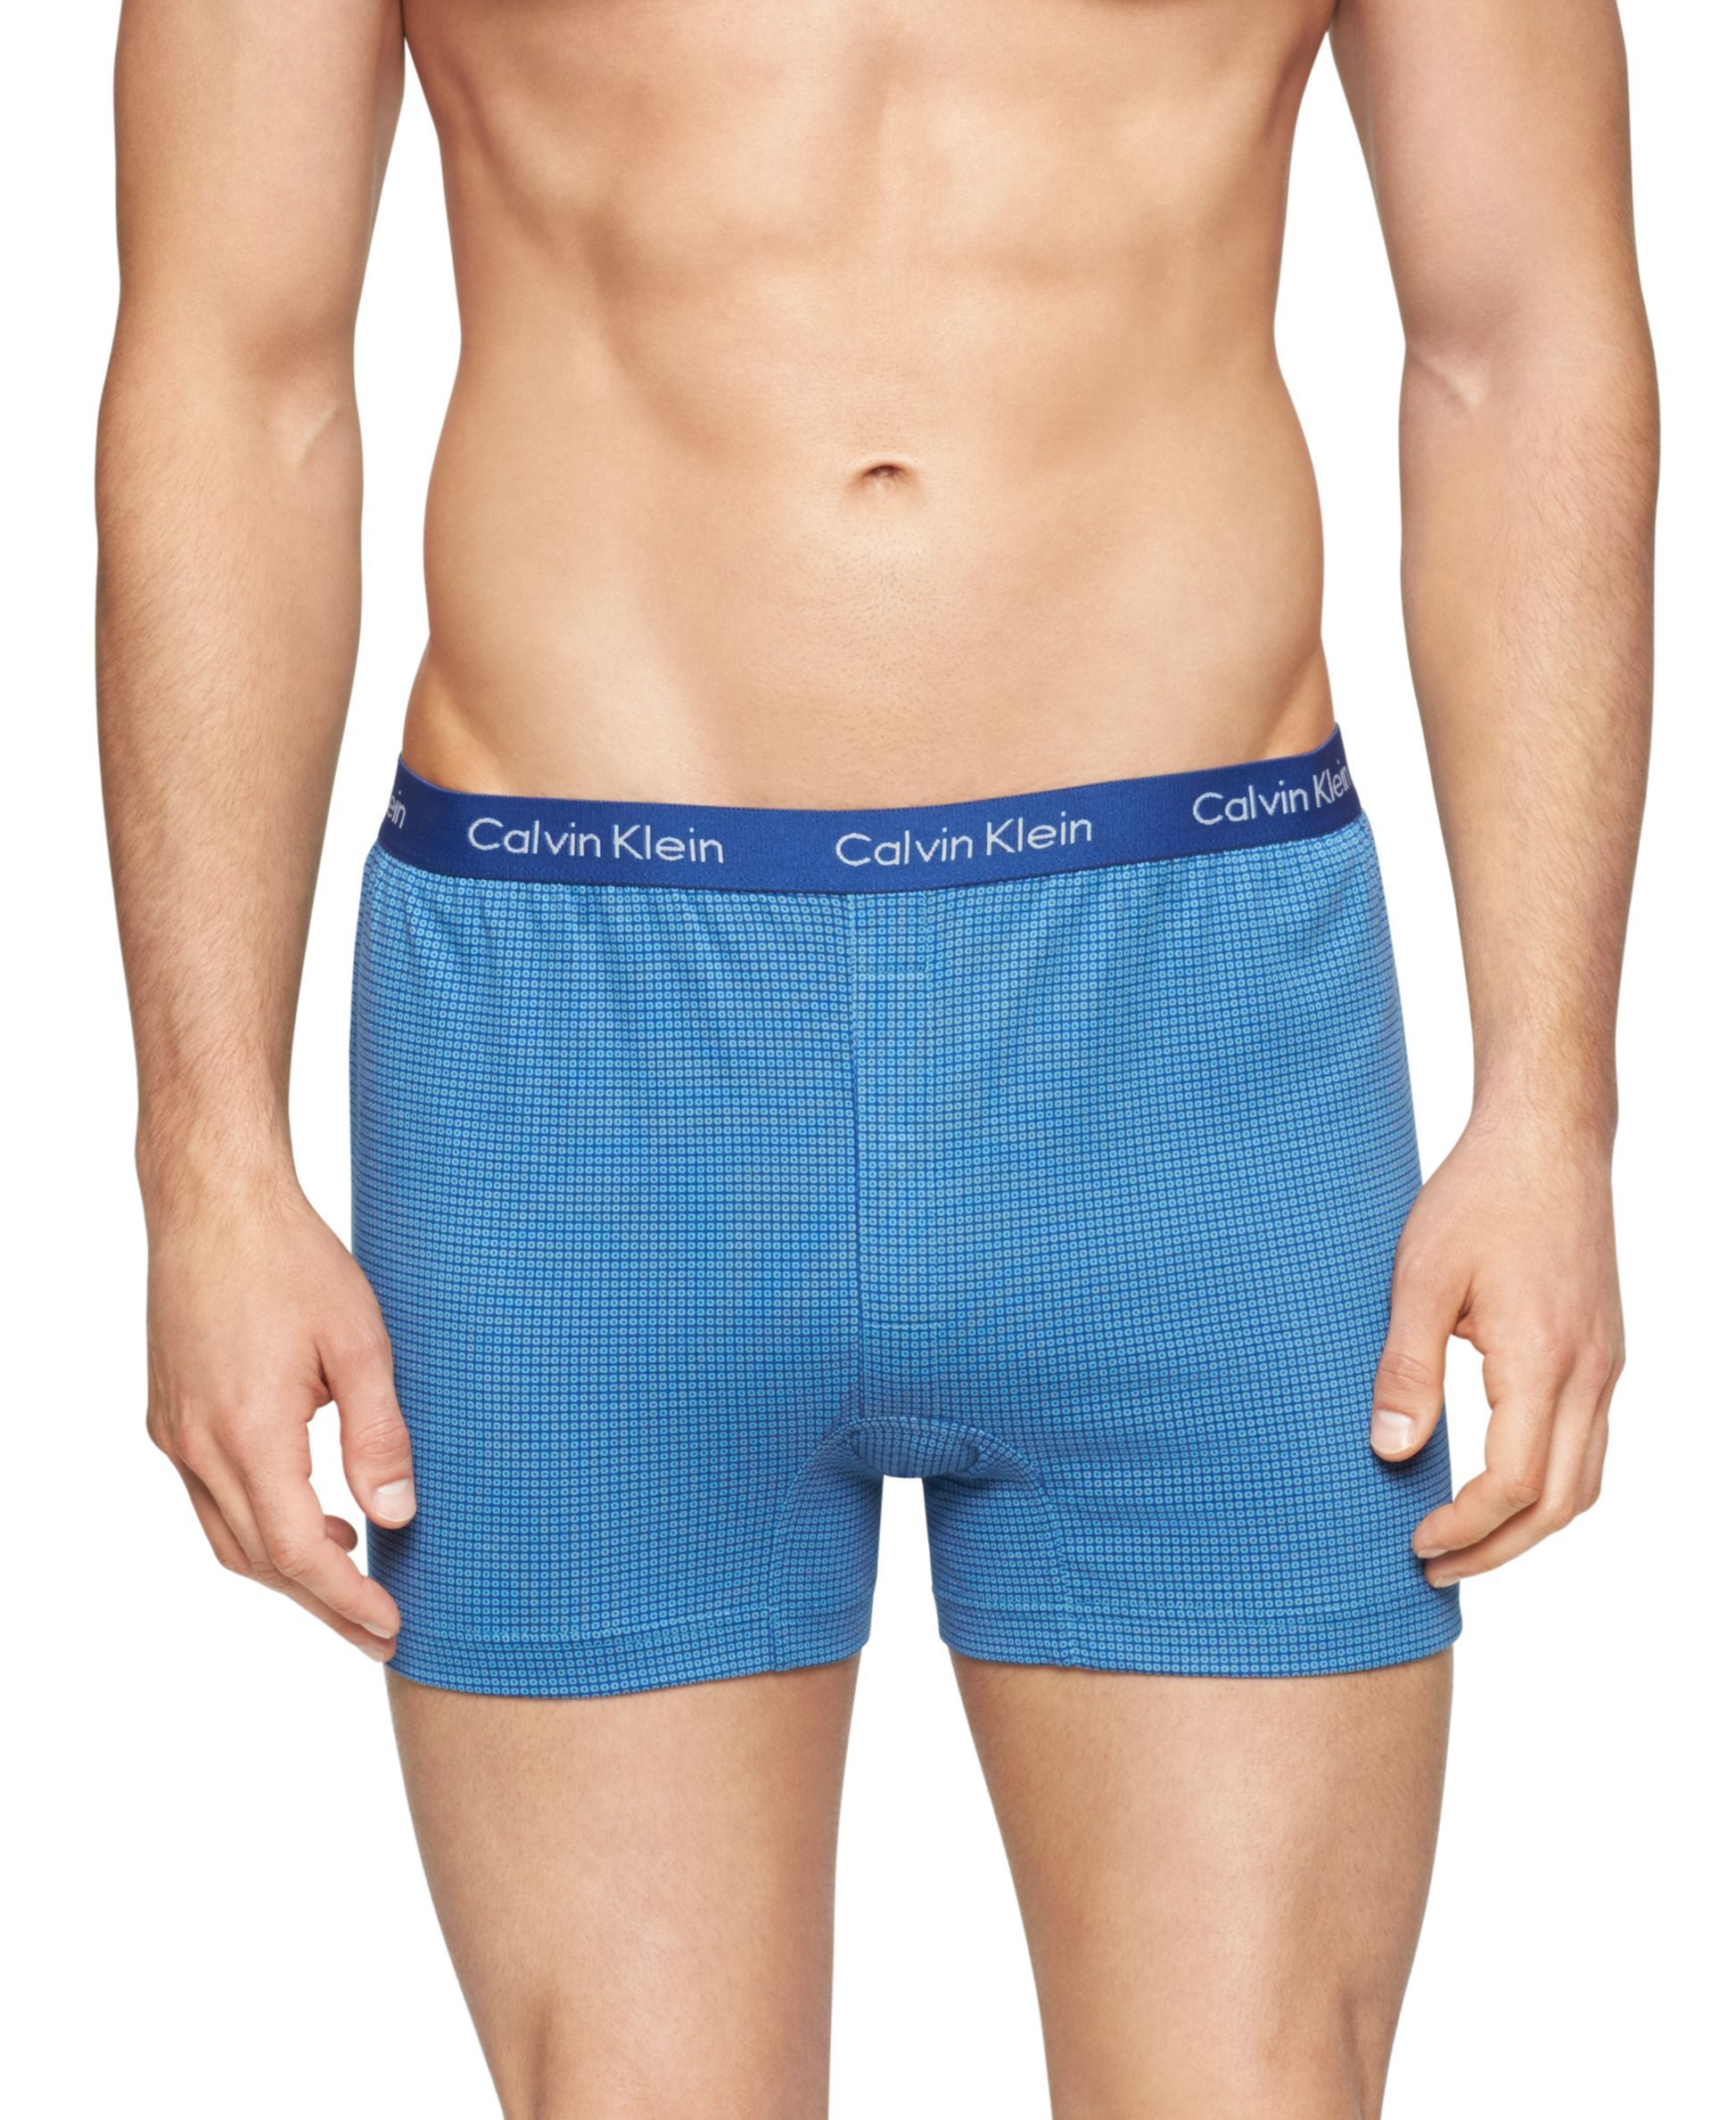 biggest discount best site diversified latest designs Calvin Klein Men's Underwear, Classic Slim Fit Knit Boxer ...